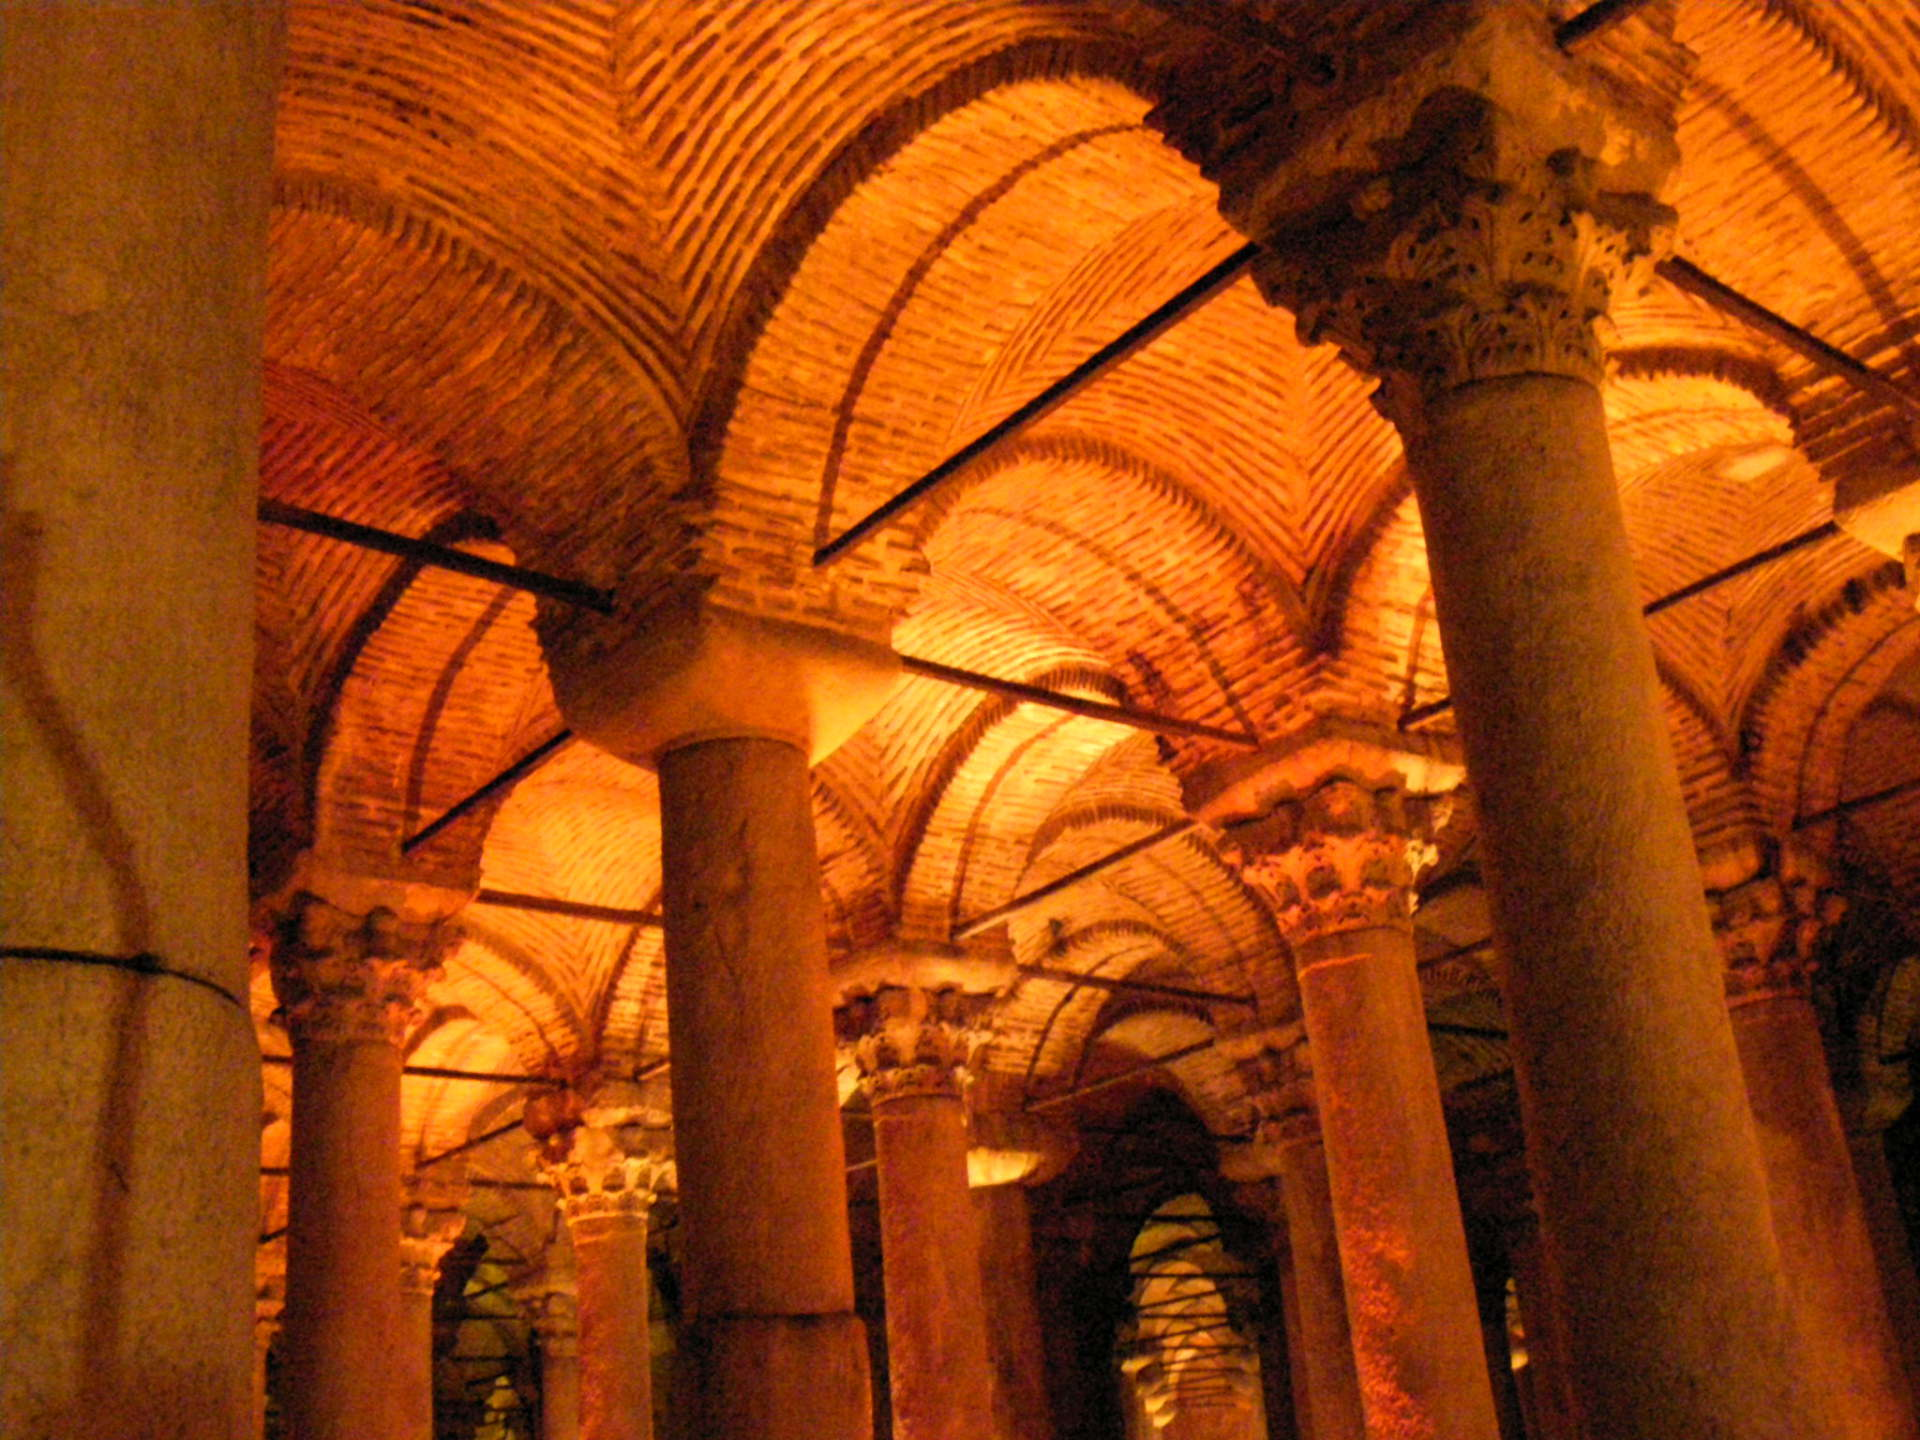 The Basilica Cistern's brick domes and varied columns fascinated us. Istanbul, Turkey: annmariemershon.com